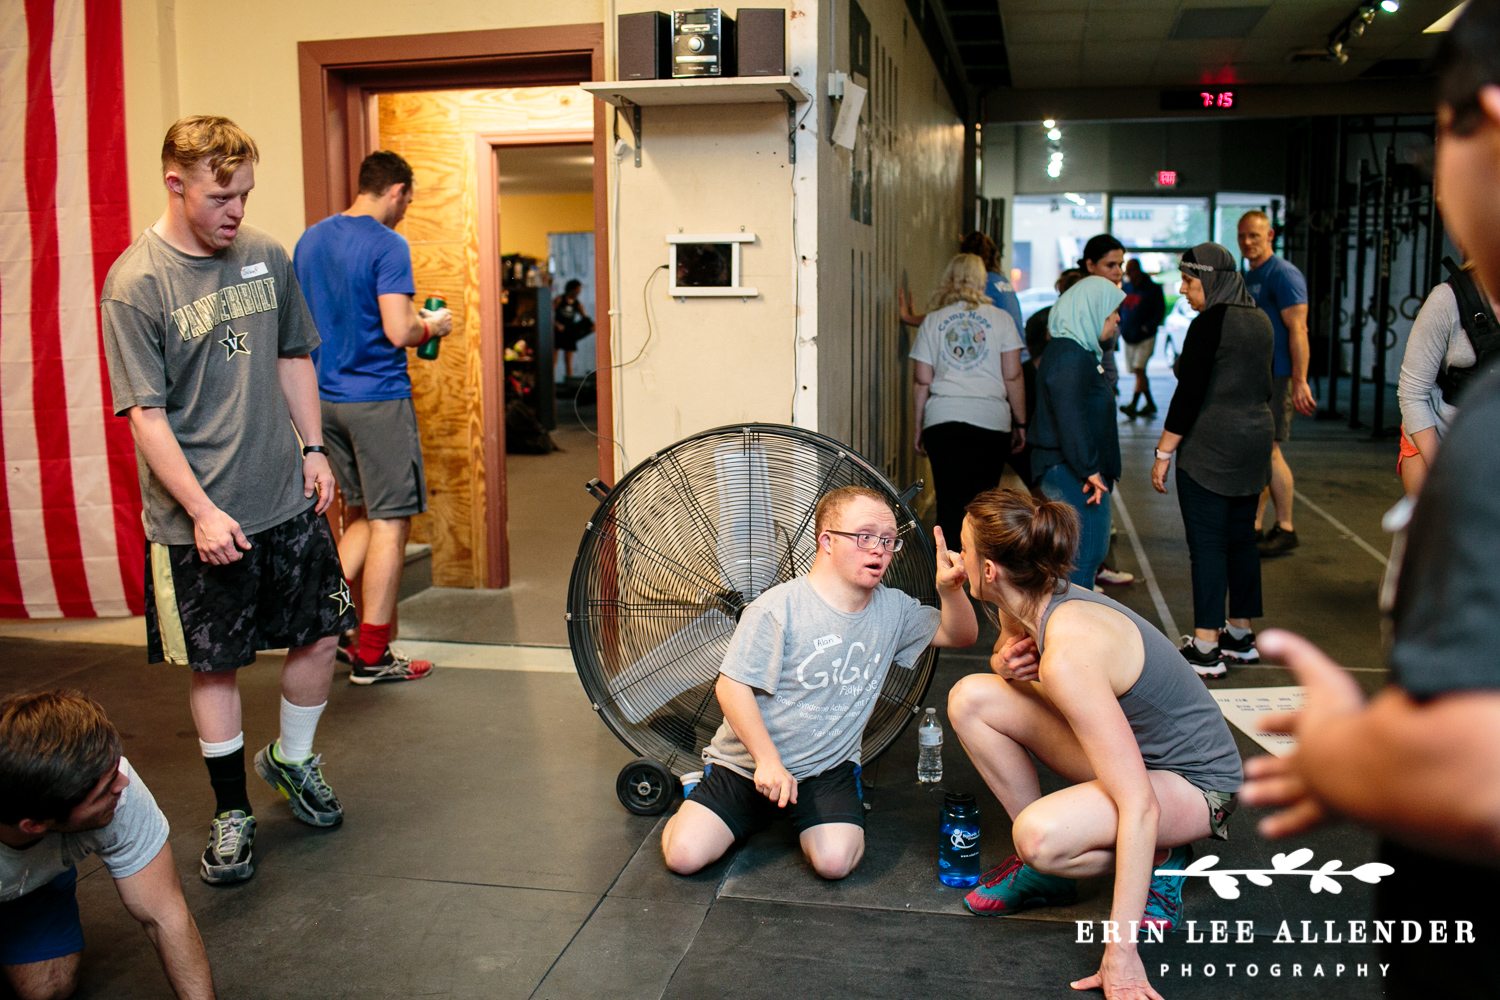 Gigis_Playhouse_On_The_End_CrossFit